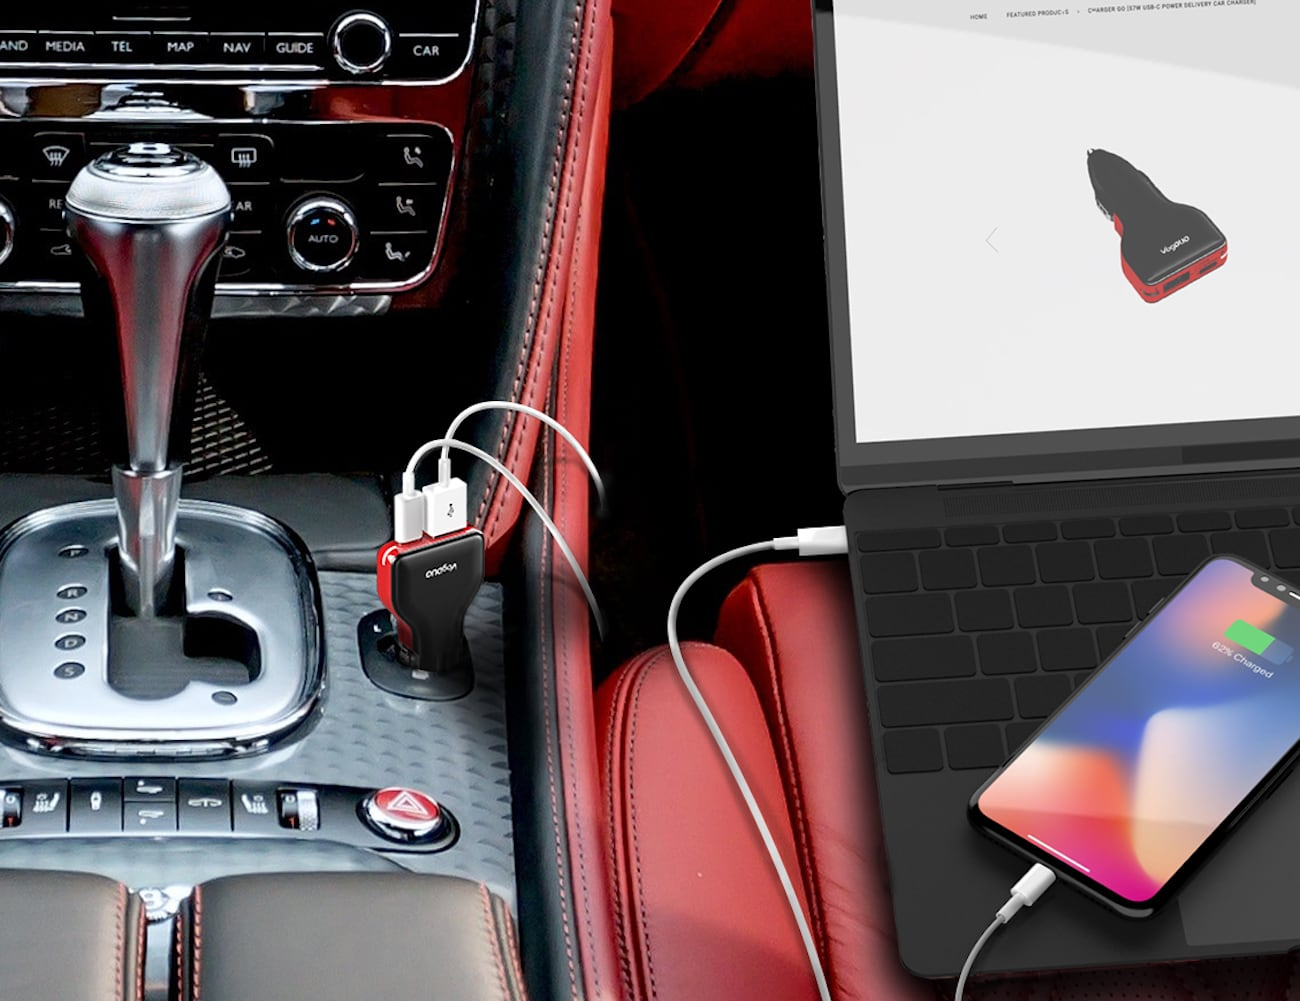 VogDUO USB-C Car Charger charges your devices while you drive